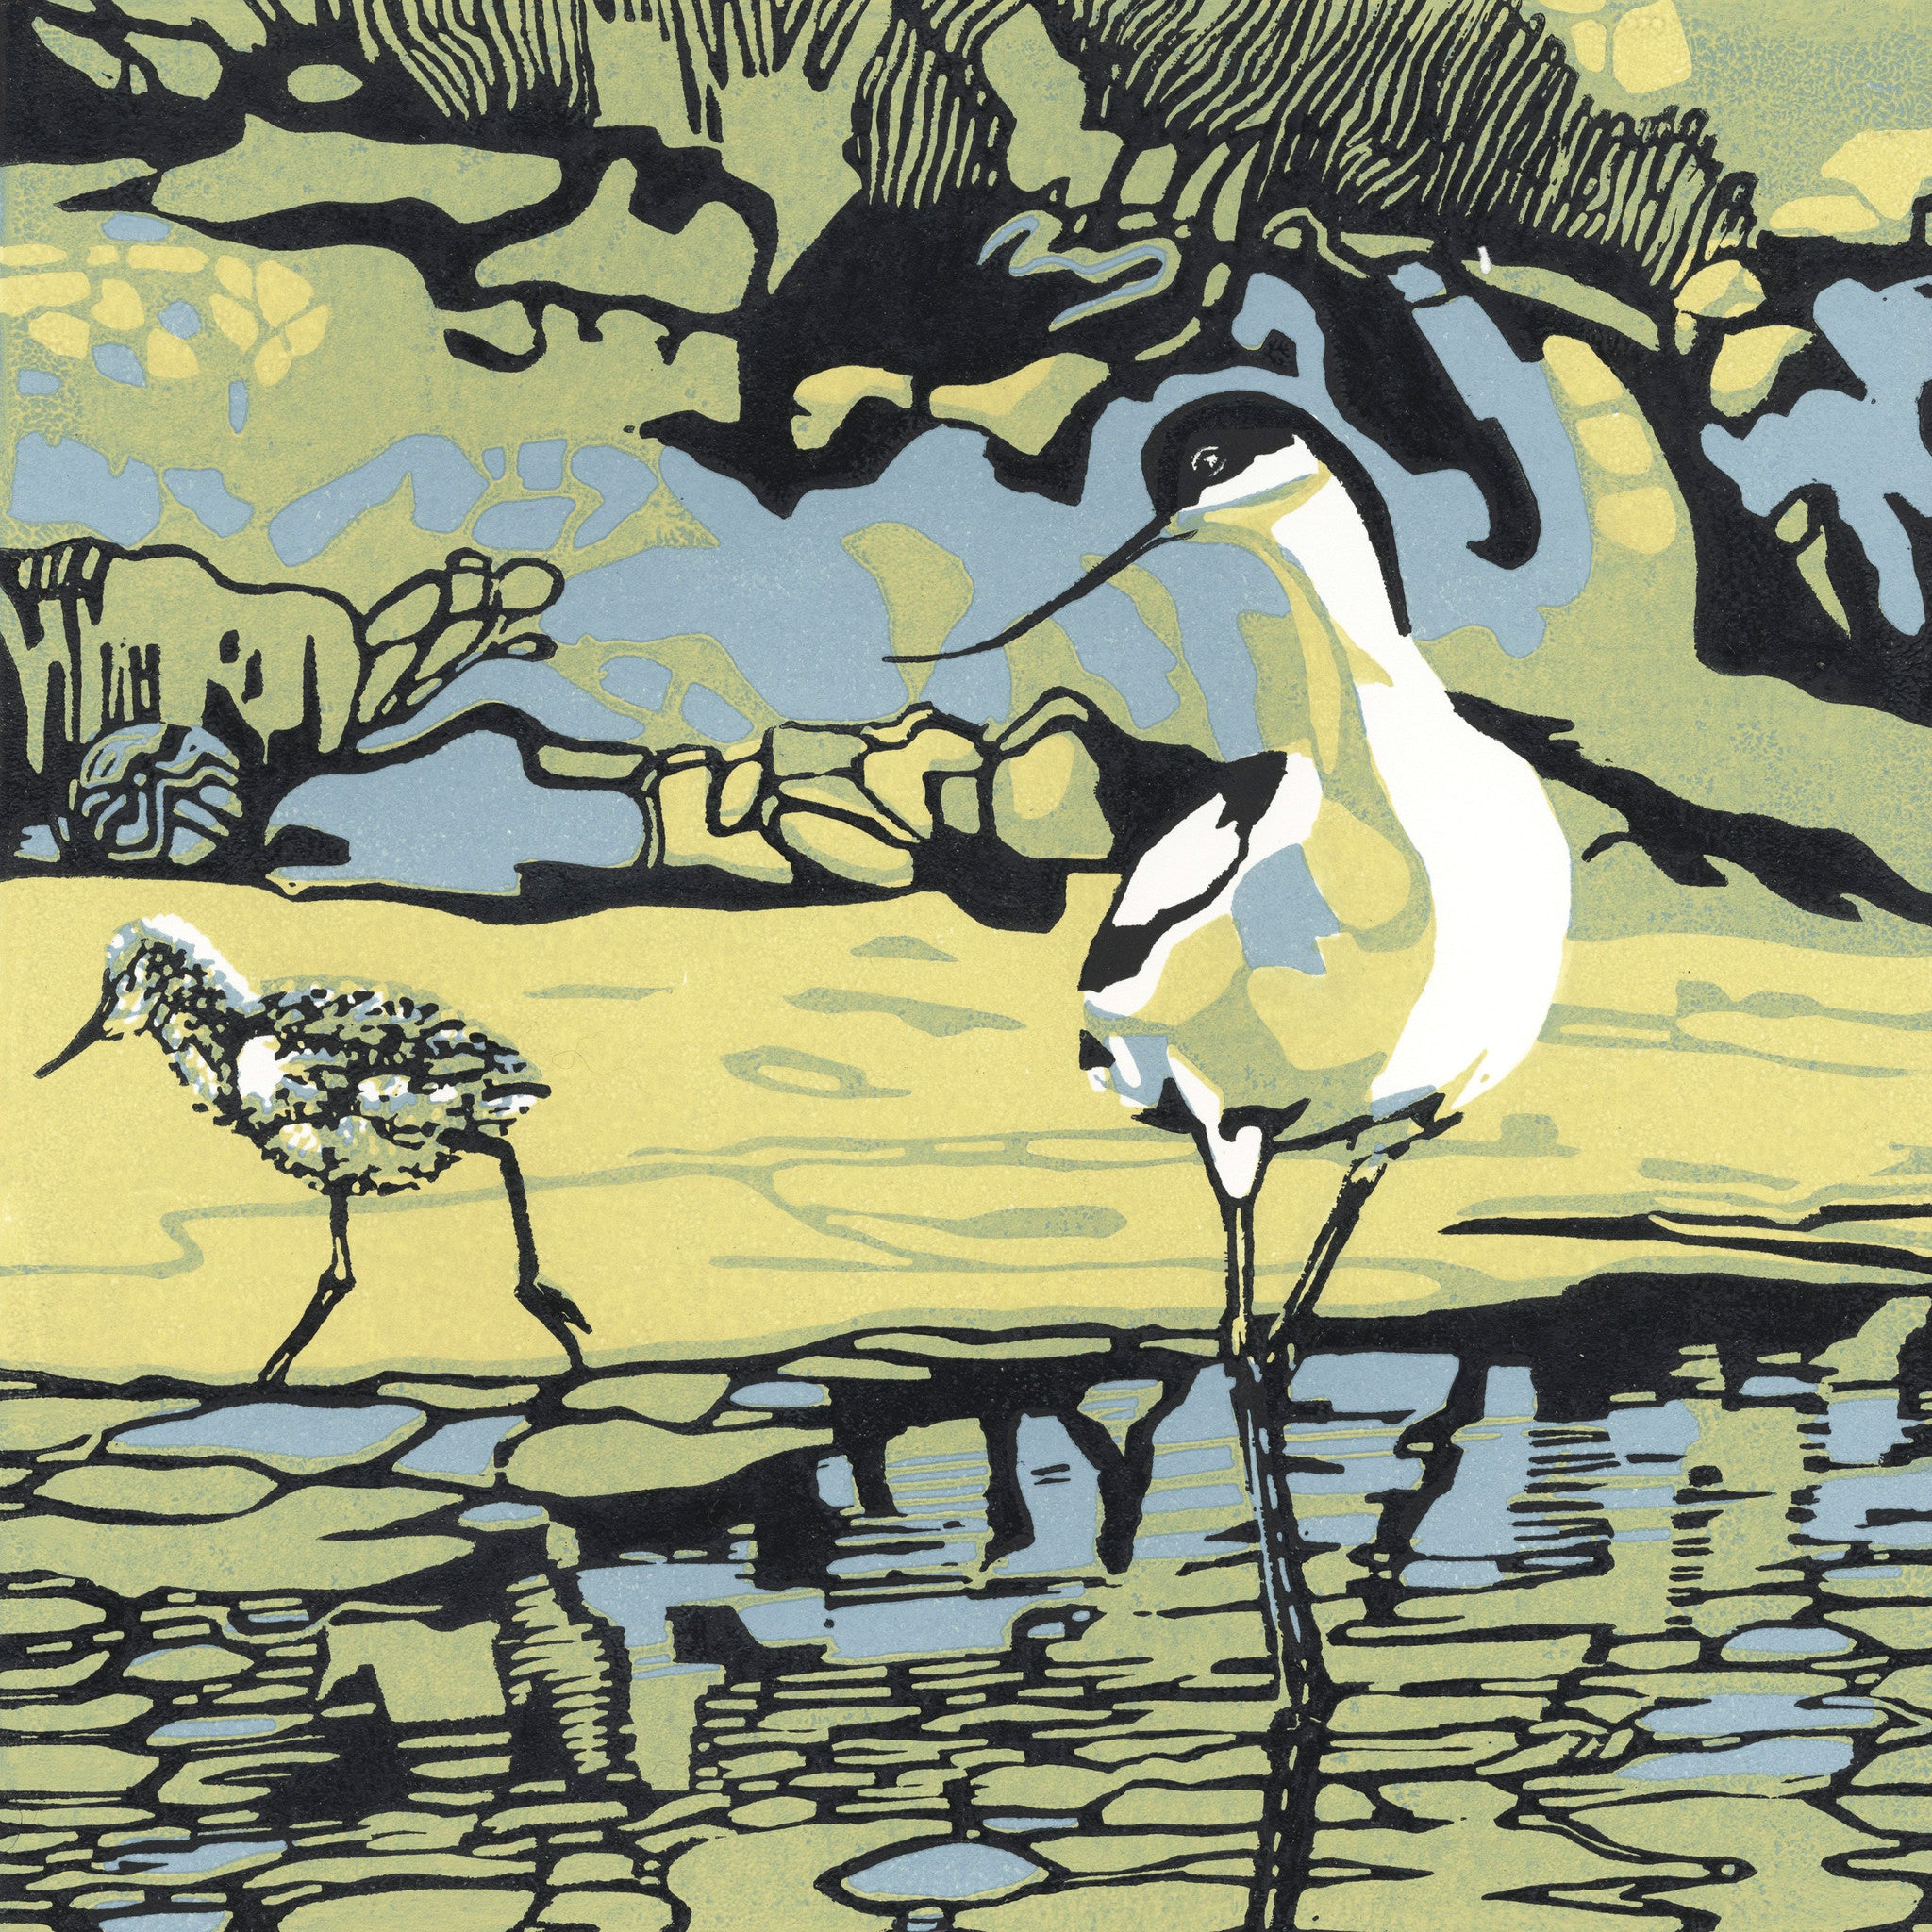 Stay Close by Max Angus, Art Greeting Card, Linocut, Avocet with chick